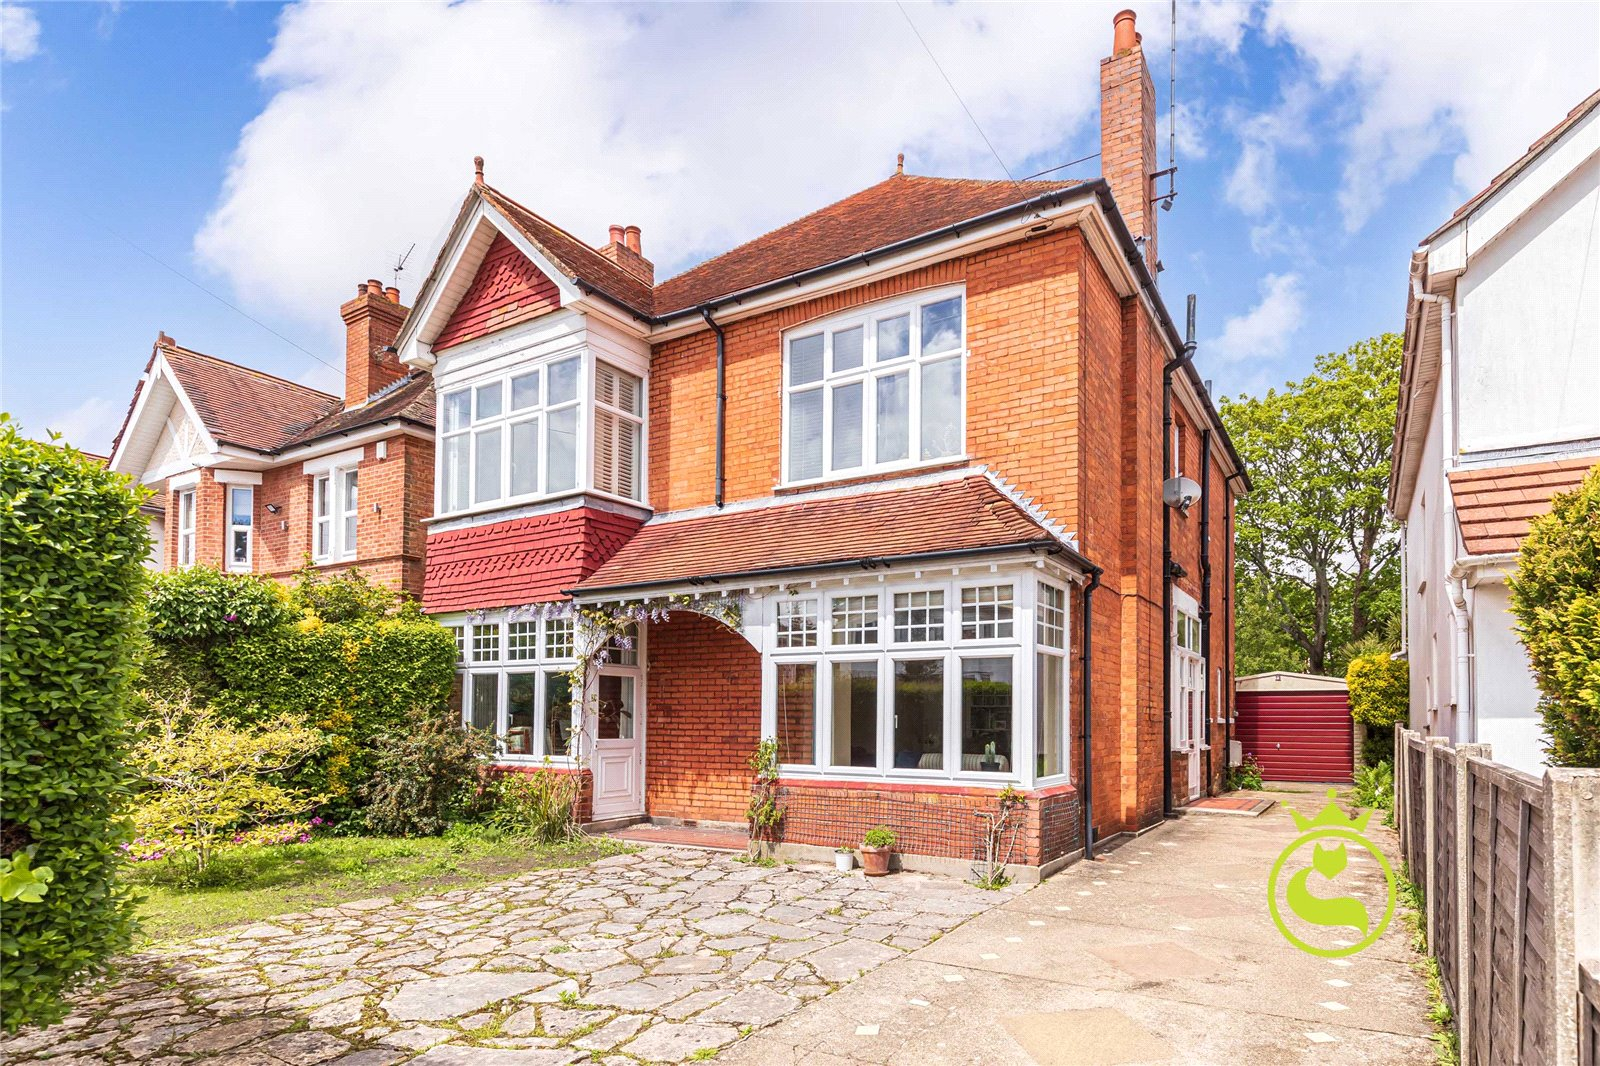 4 bed house for sale in Parkstone Avenue, Lower Parkstone, BH14